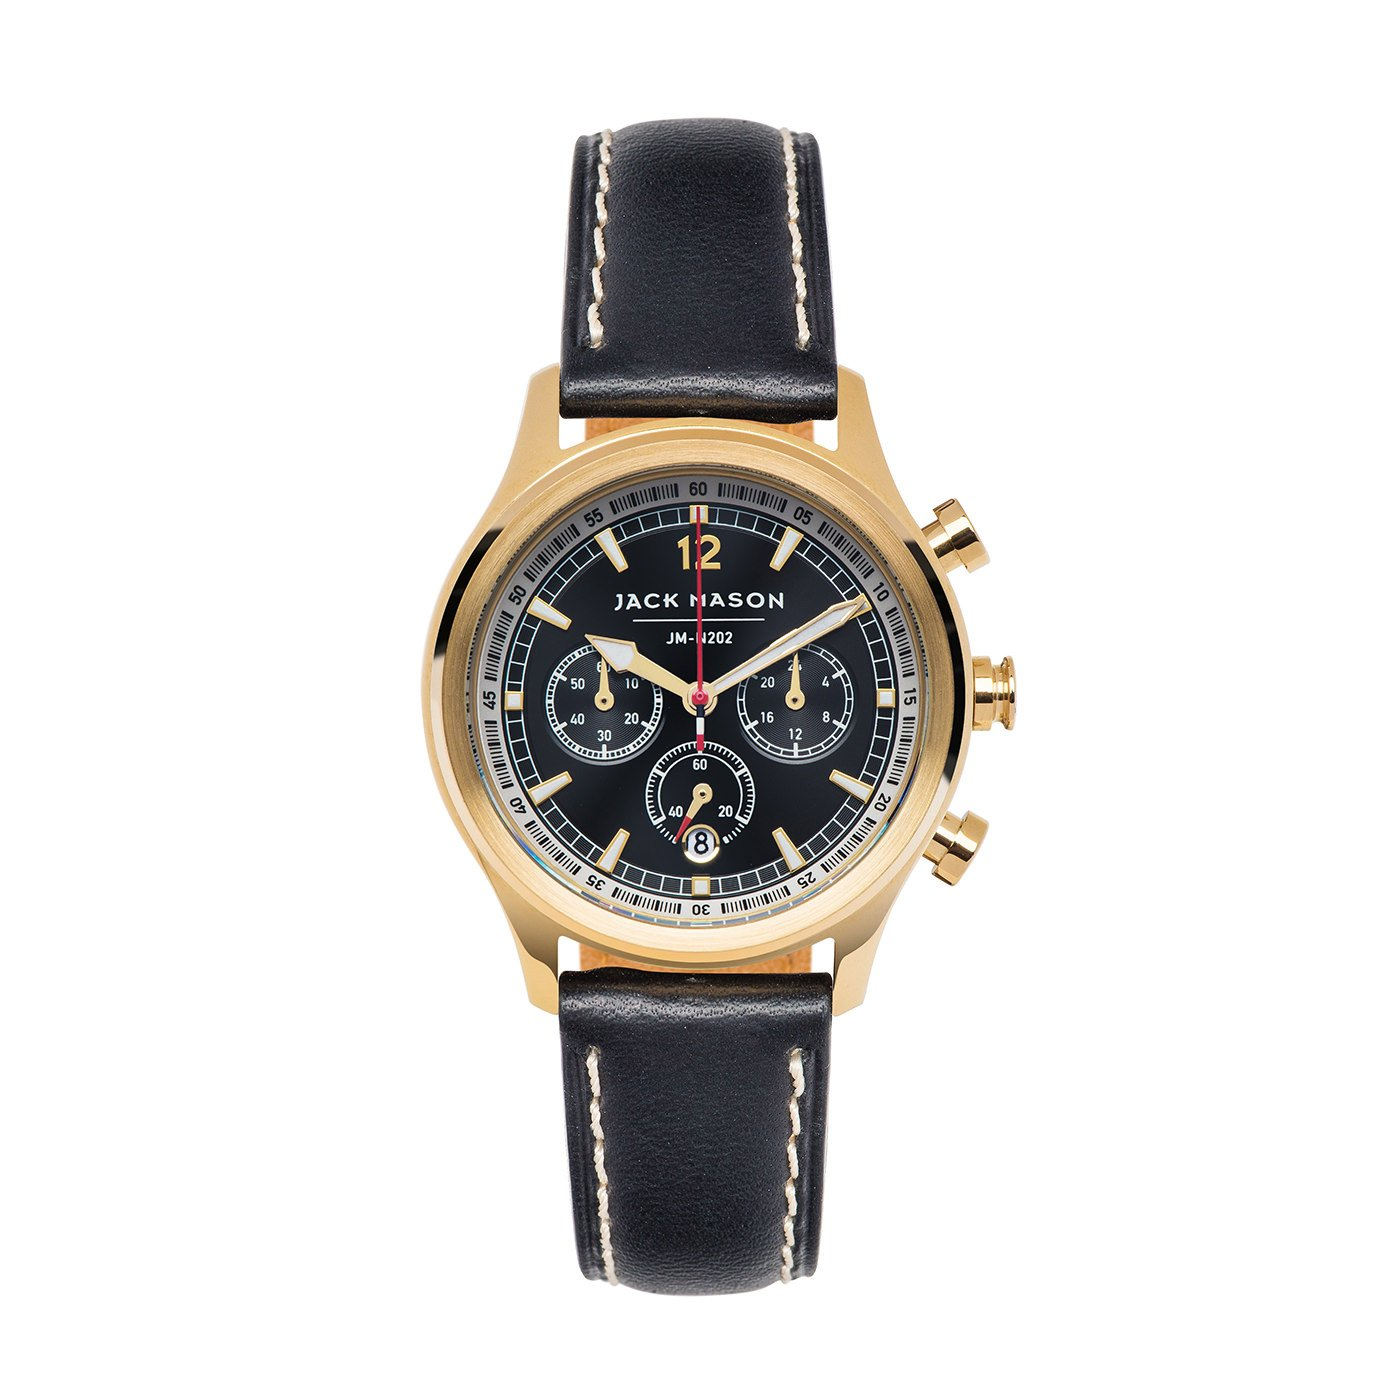 Jack Mason Women's Chronograph Watch Nautical Black Italian Leather Strap JM-N202-004